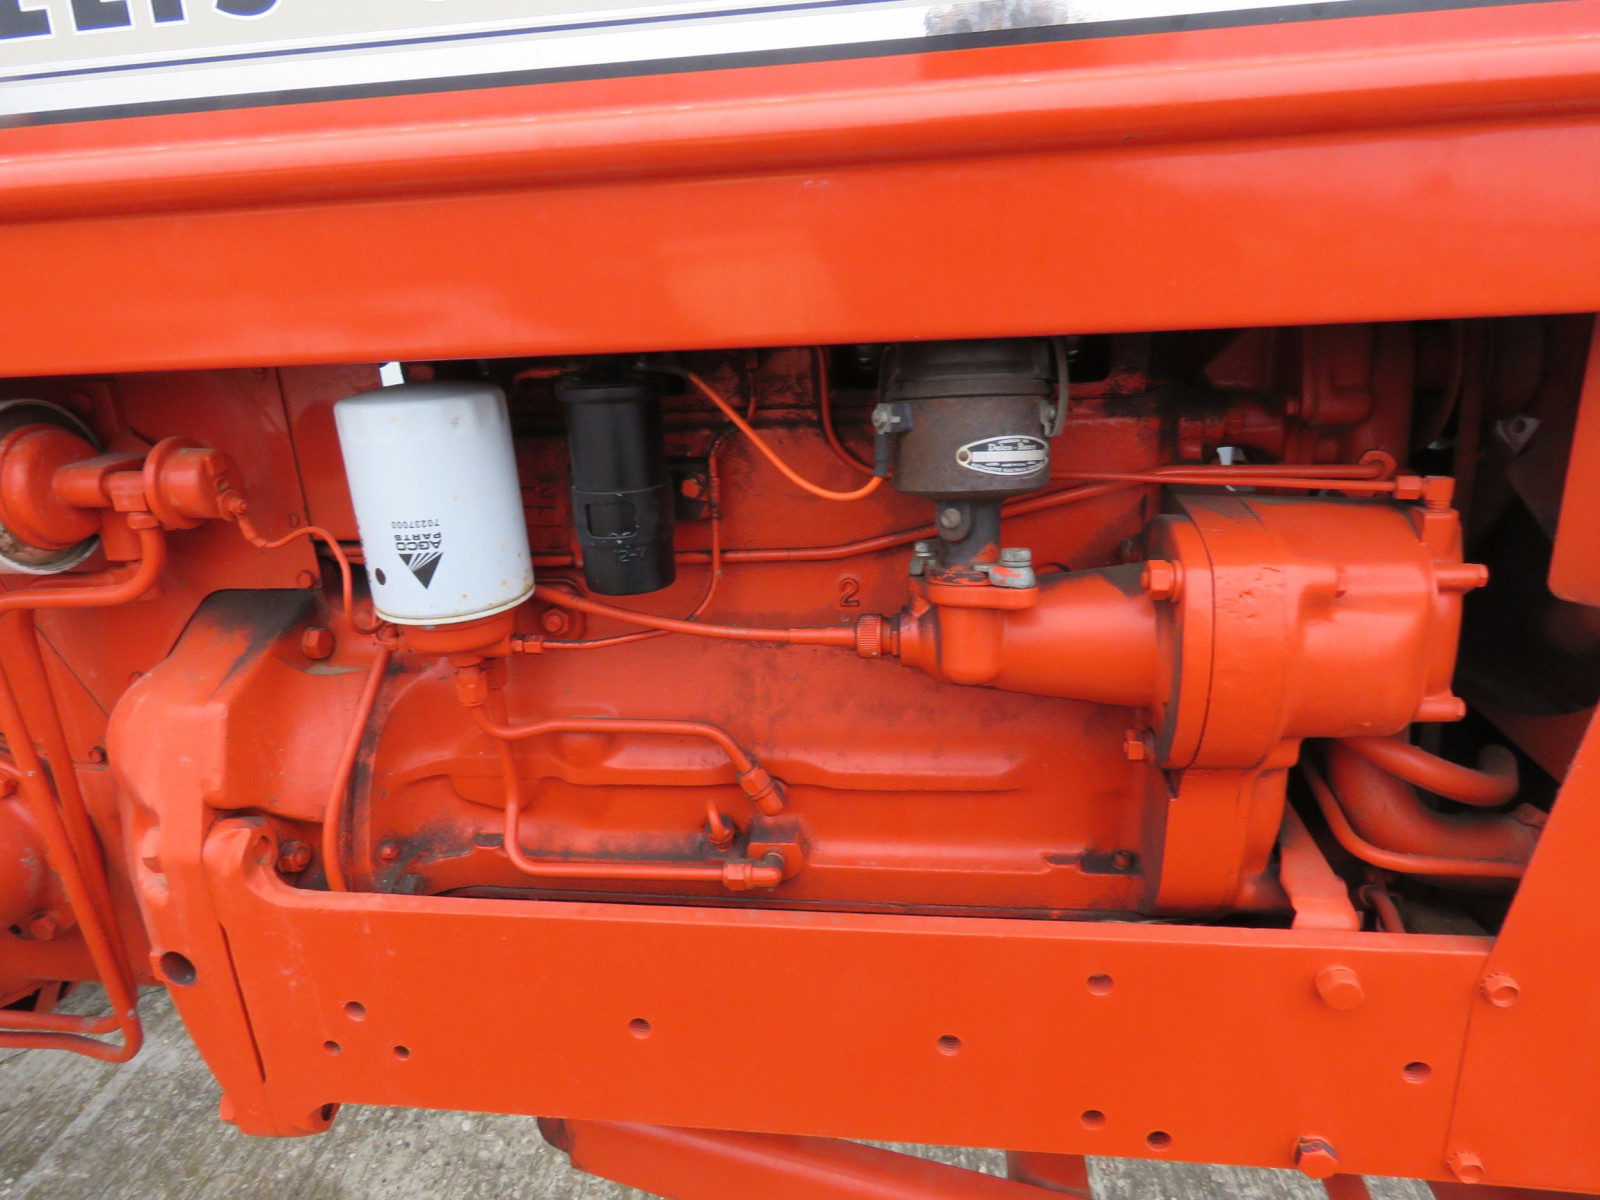 Allis Chalmers D17 Tractor - Image 4